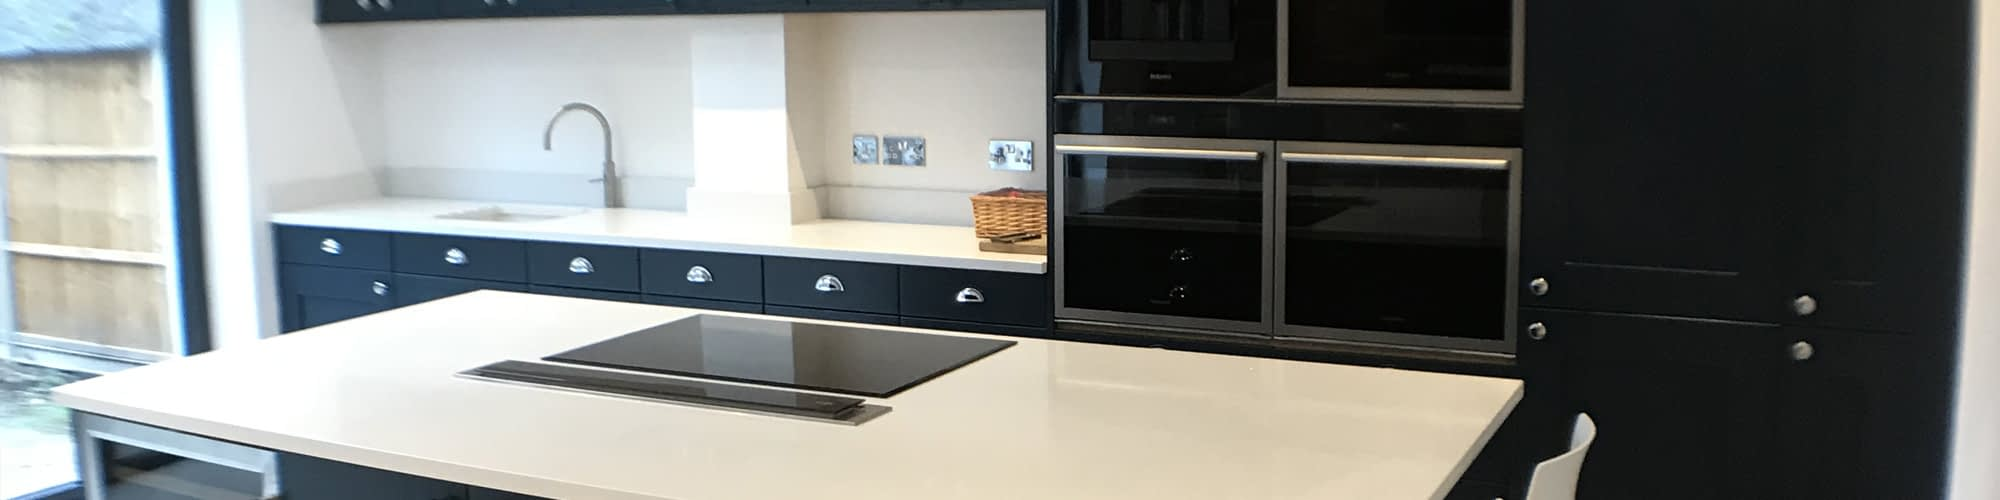 Kitchens - Builders in Sunbury-on-Thames